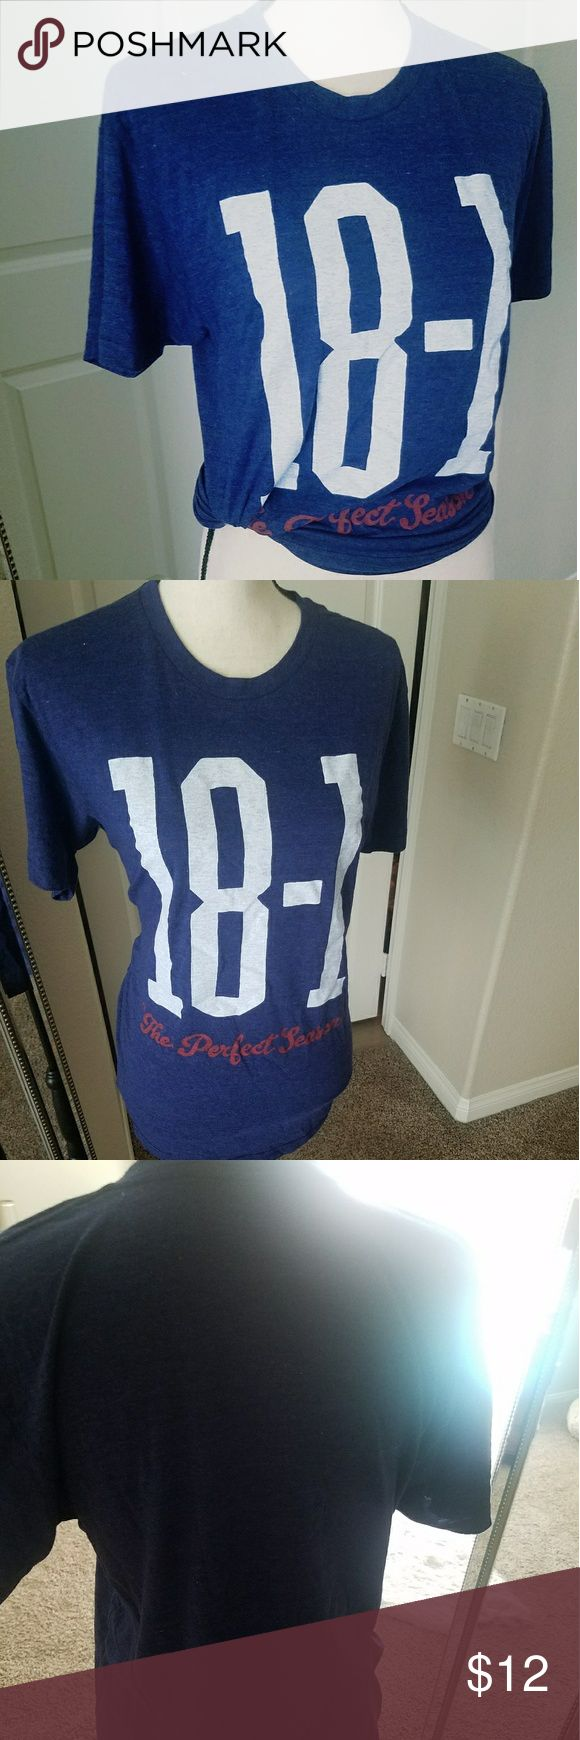 Tom Brady tee shirt 18-1 Tom Brady tee shirt.  Size medium but fits closer to a large. Brand new, never worn. American Apparel Tops Tees - Short Sleeve